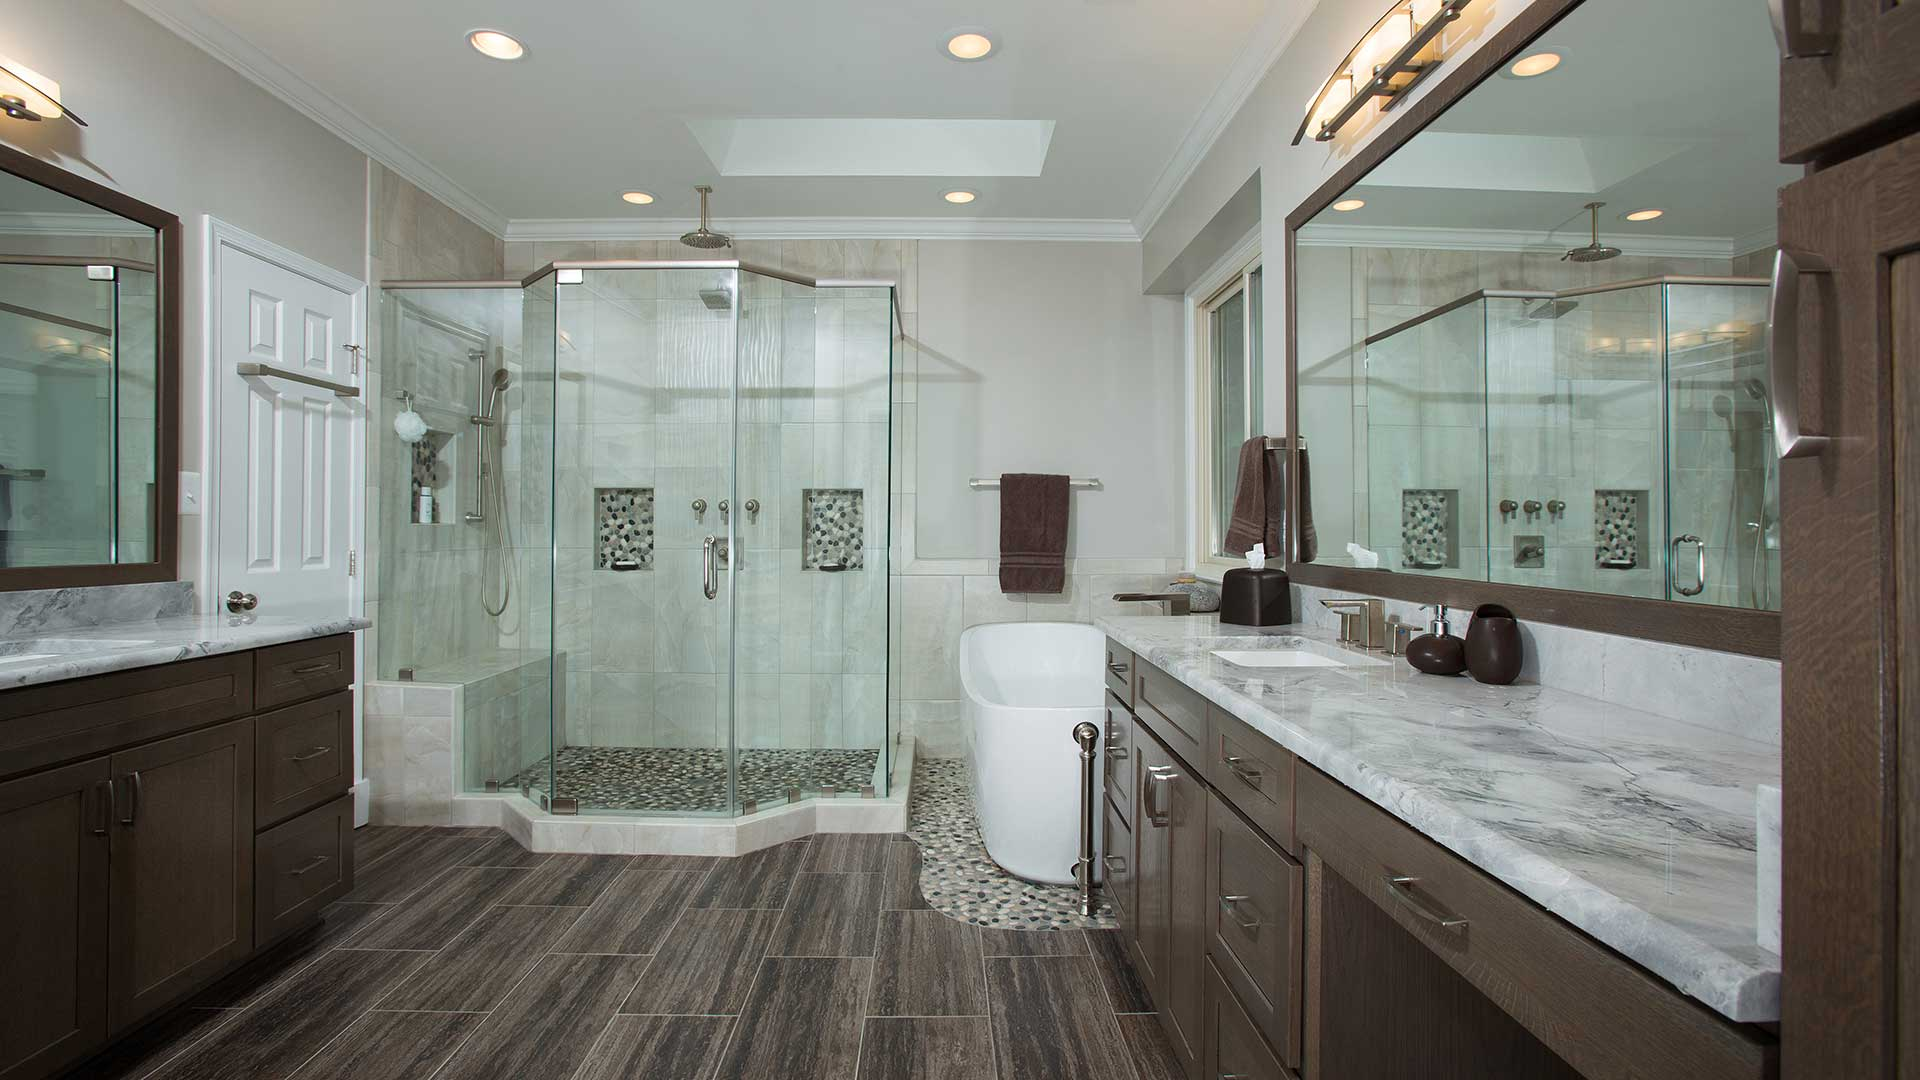 Bathroom Remodeling The Power Of The Shower Michael Nash Design - Residential bathroom remodeling